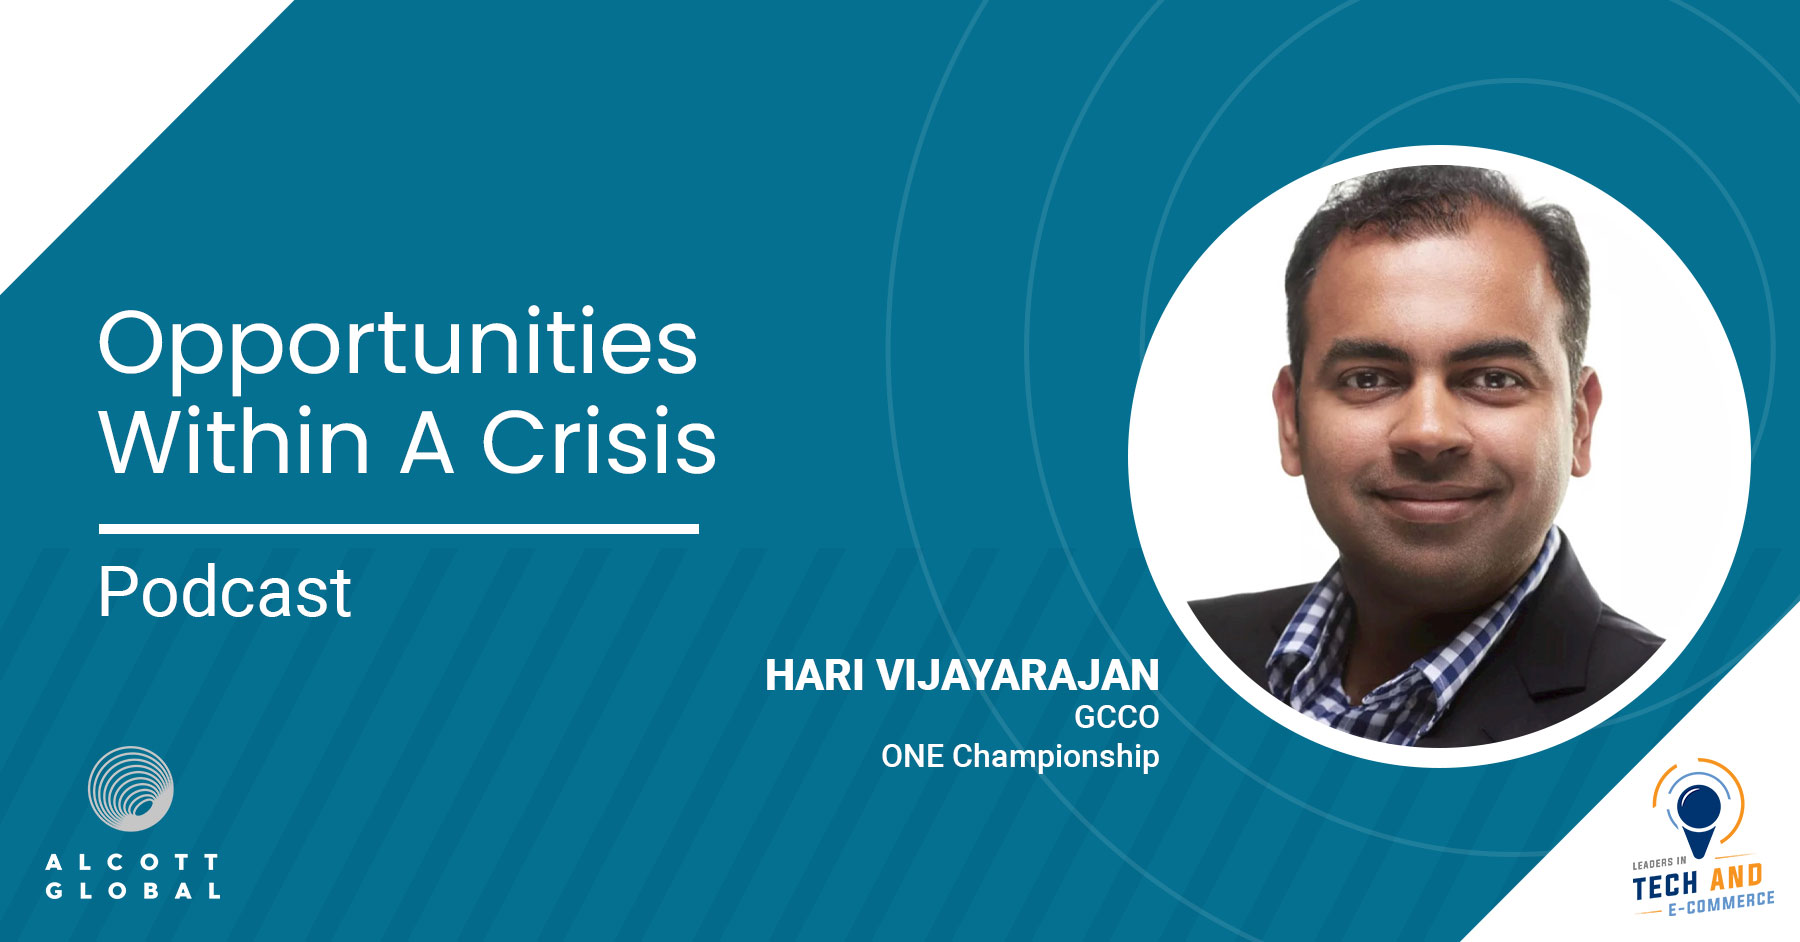 Opportunities within a Crisis with Hari Vijayarajan GCCO at ONE Championship Featured Image